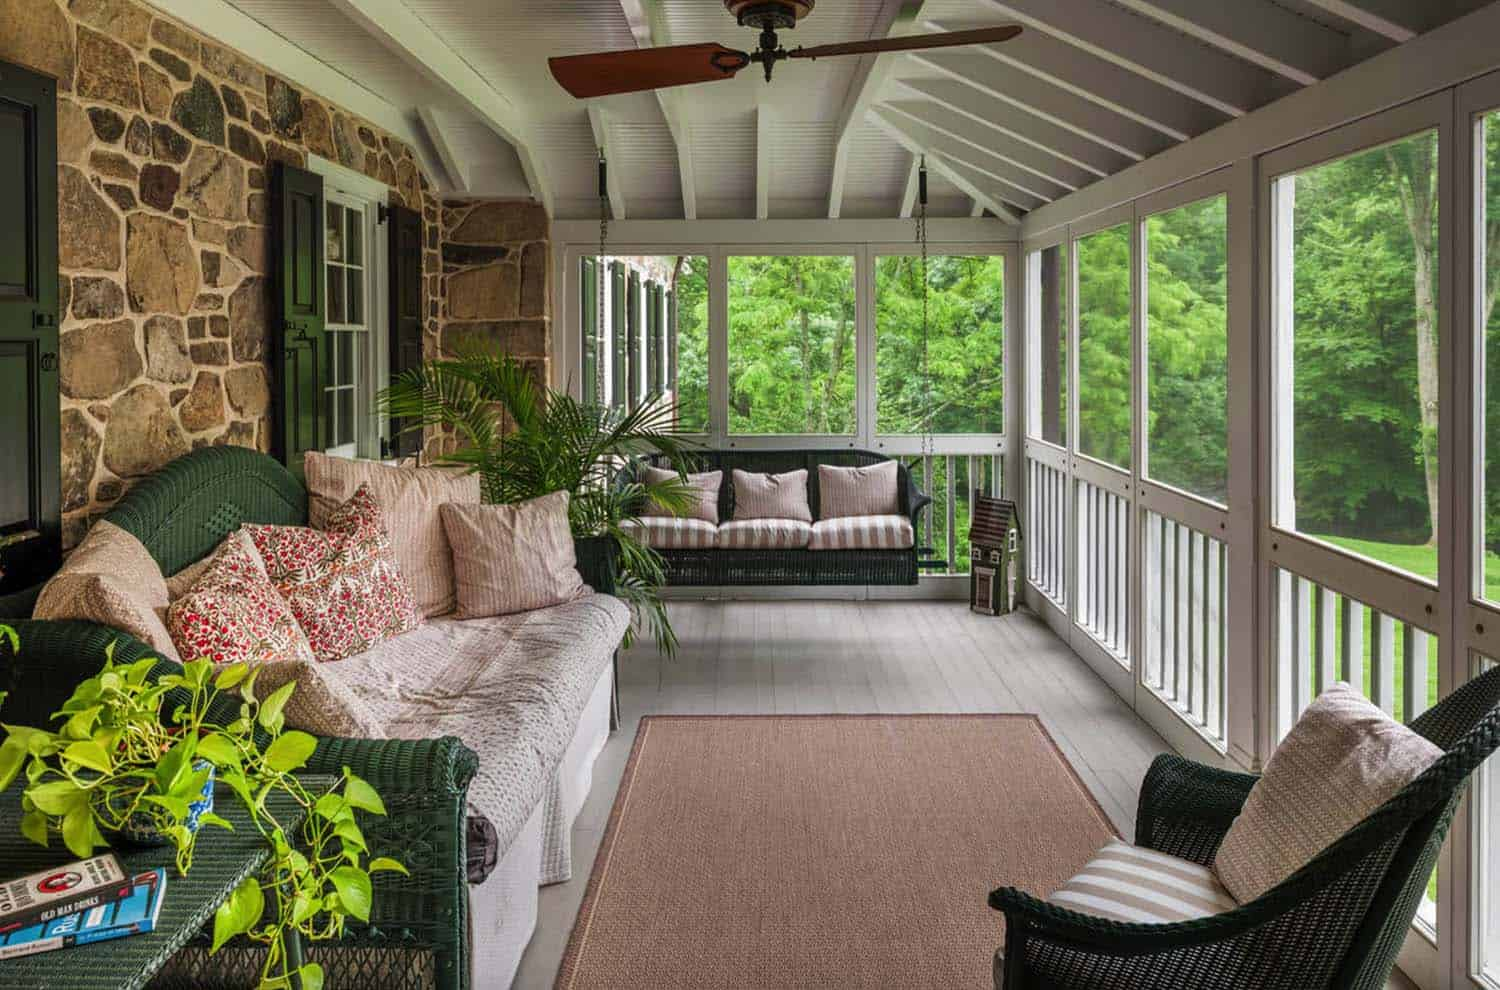 45 Amazingly Cozy And Relaxing Screened Porch Design Ideas